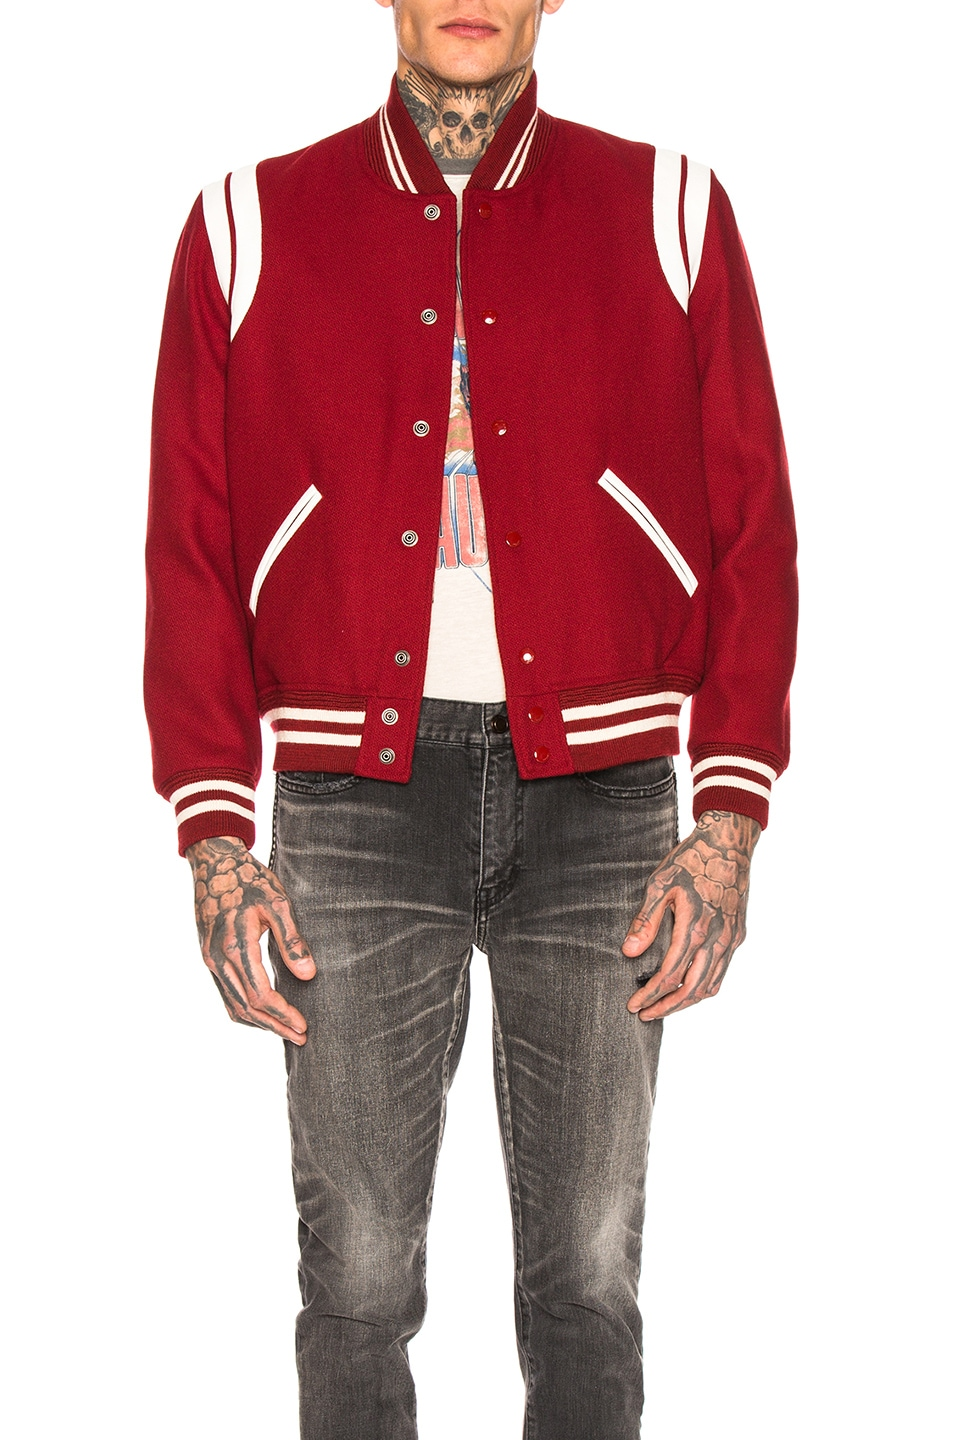 a17c1435f54 Image 1 of Saint Laurent Teddy Varsity Jacket in Red